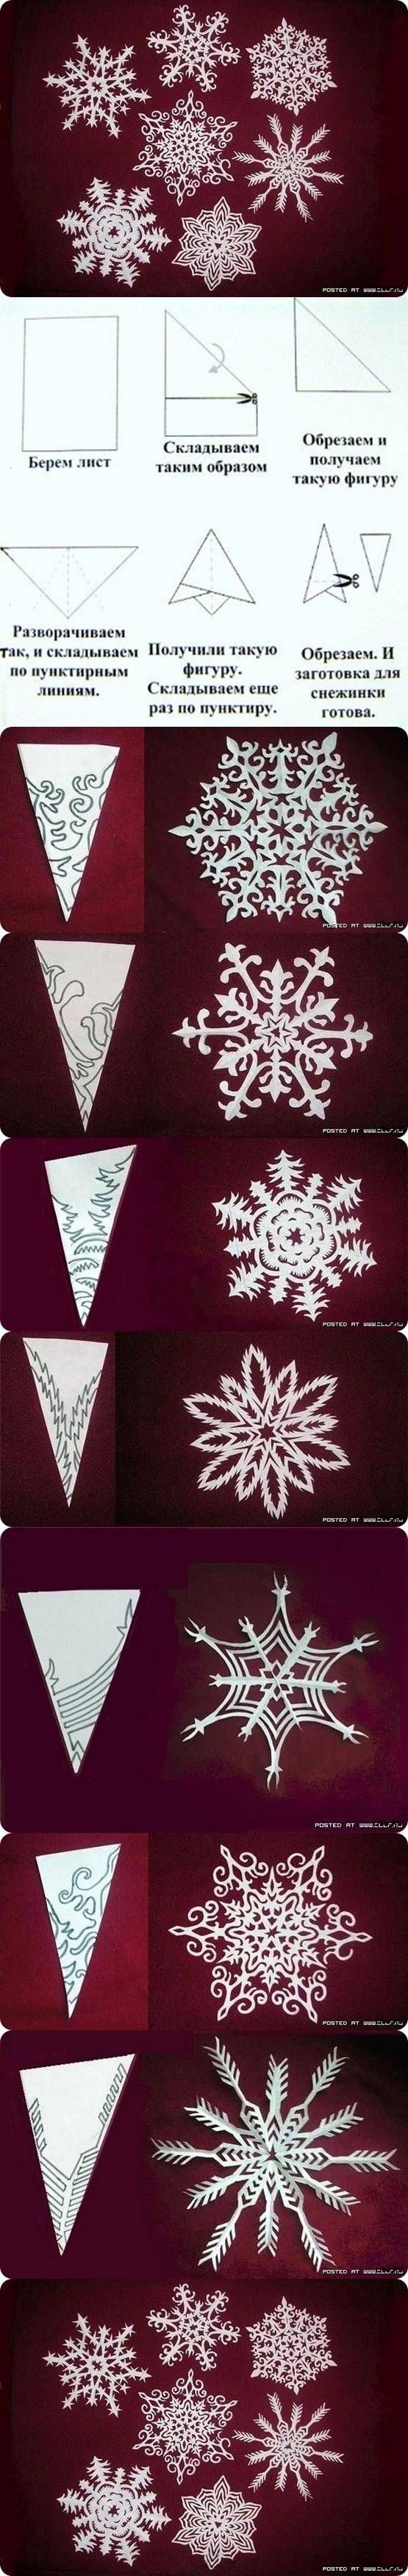 DIY Snowflakes of Paper DIY Projects | UsefulDIY.com